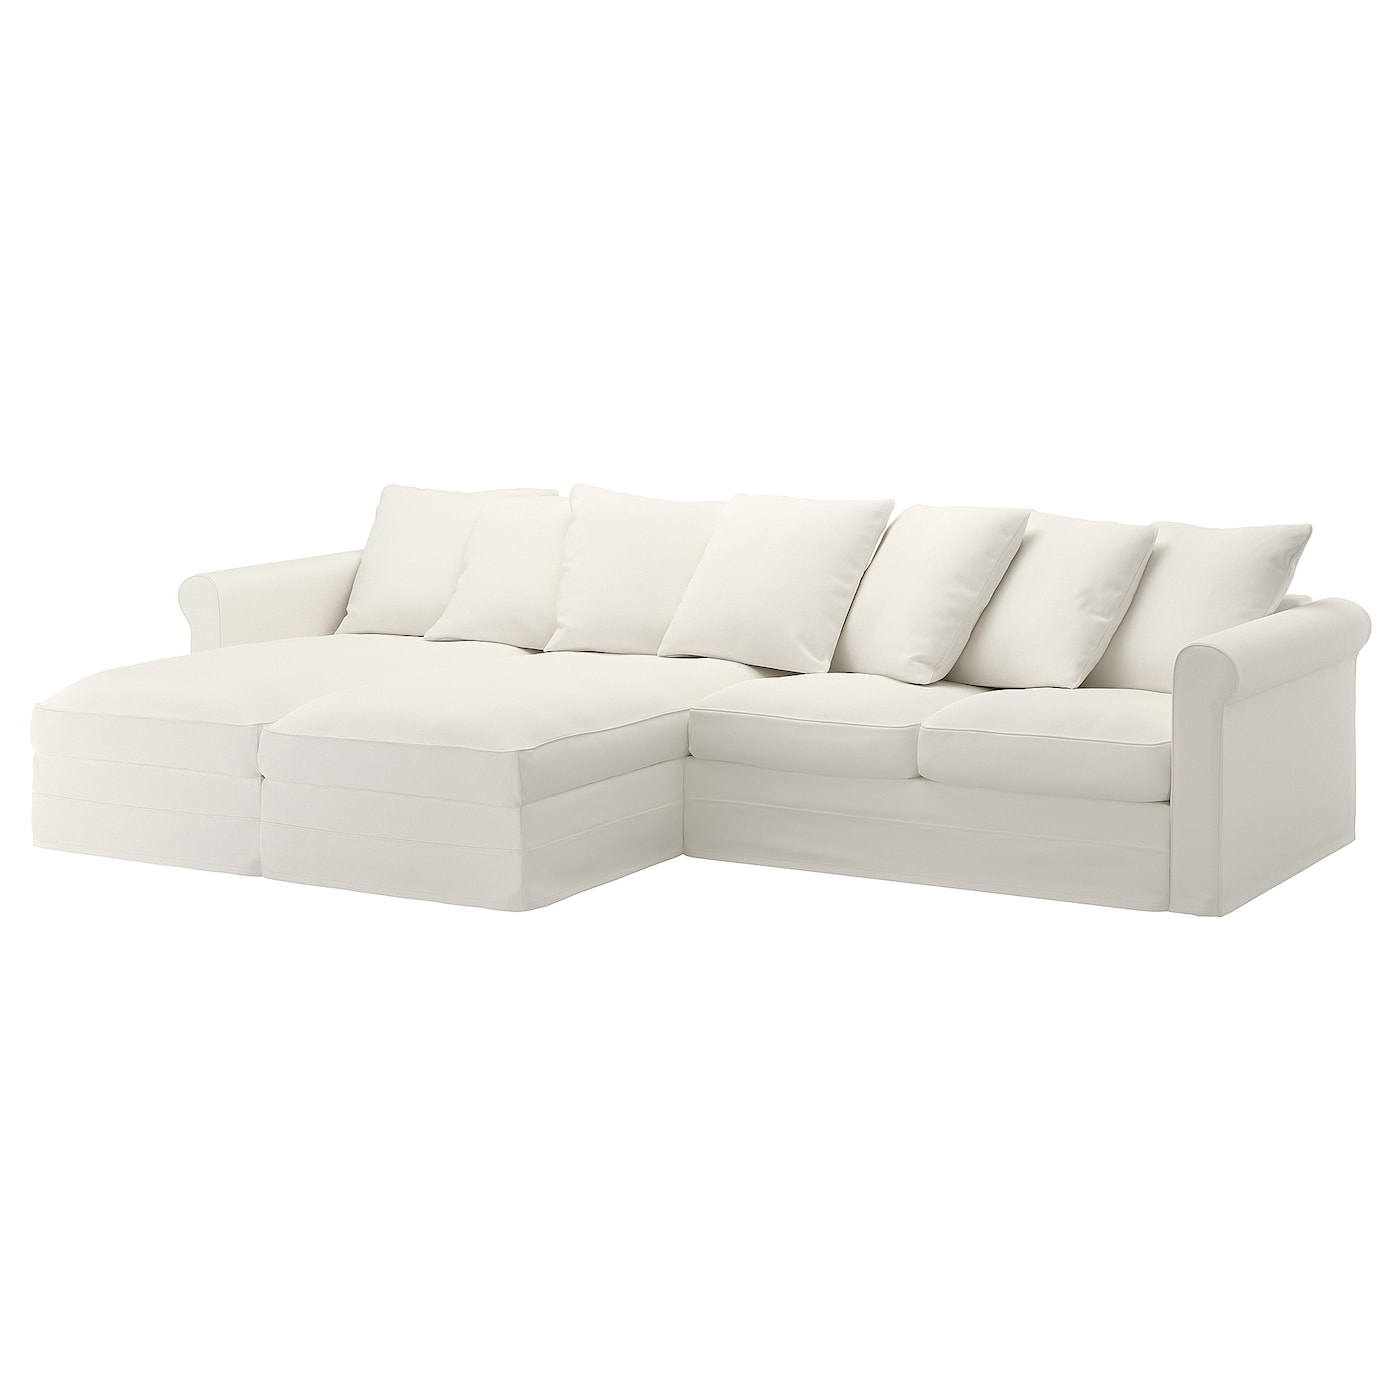 IKEA GRÖNLID cover for 4-seat sofa